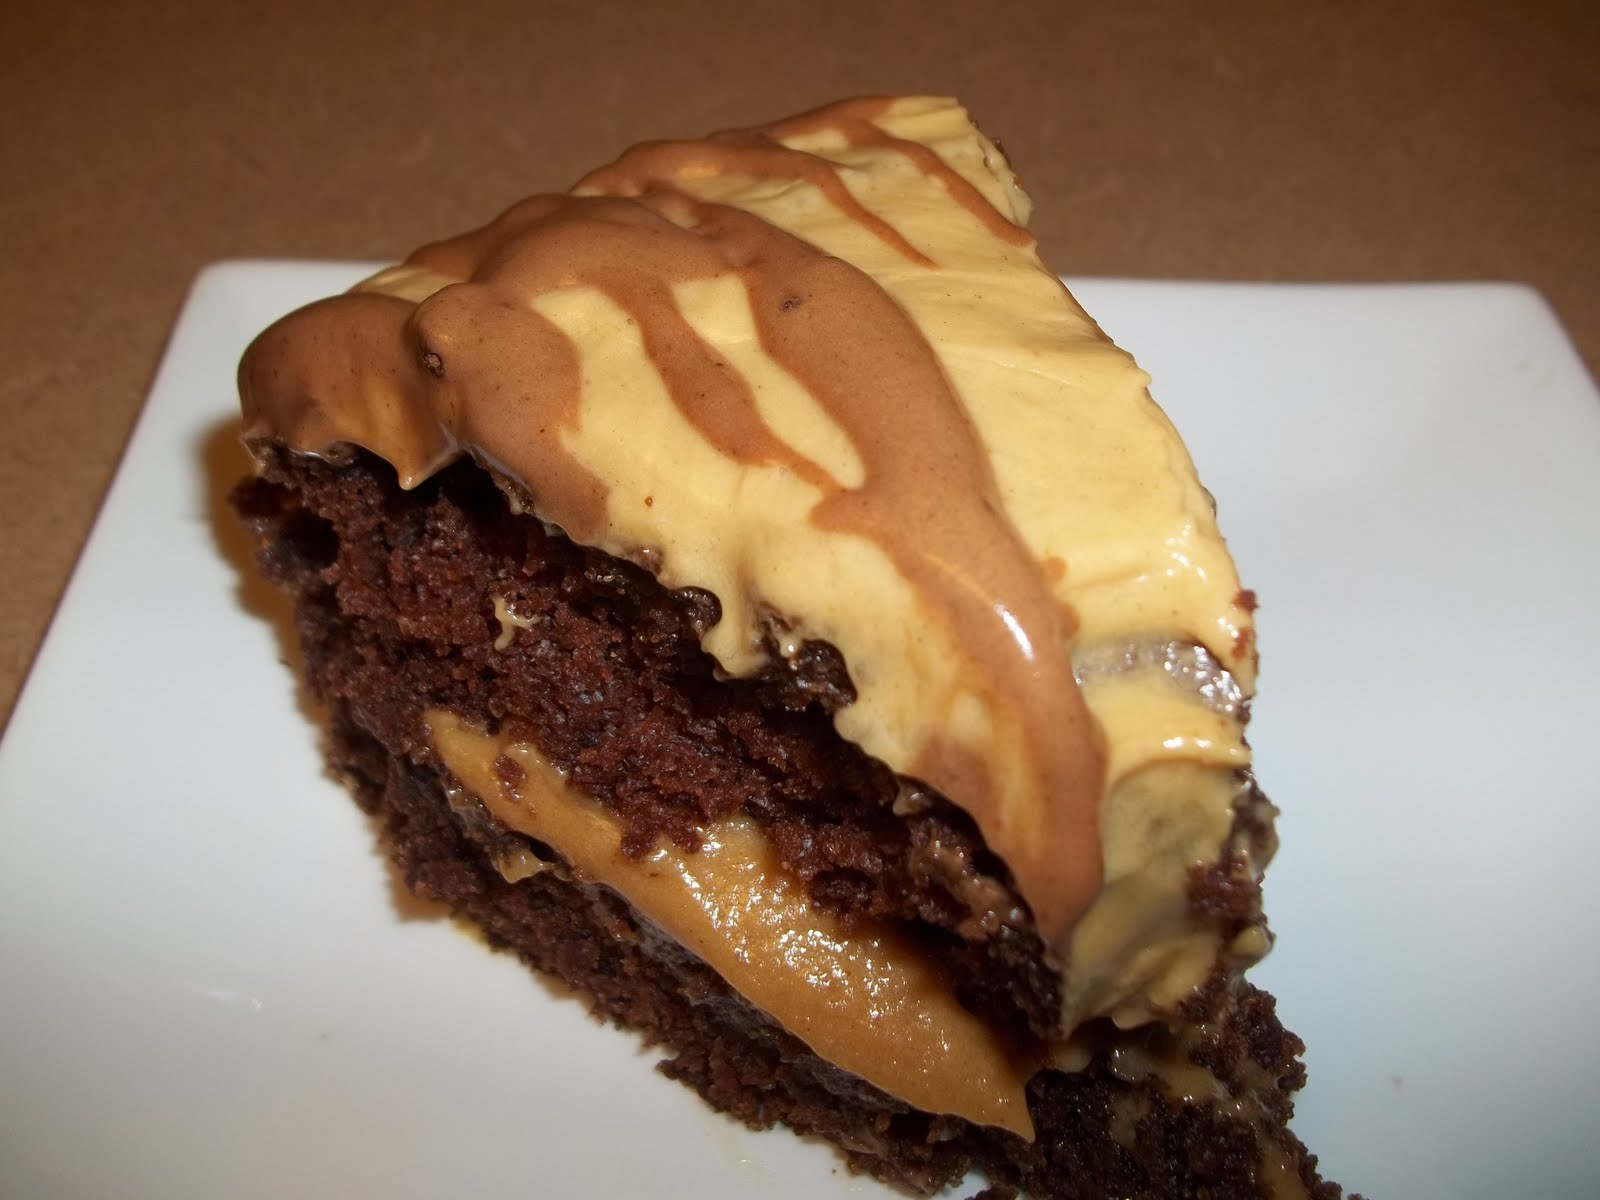 Facebook Chocolate Mayonnaise Cake With Peanut Butter Frosting